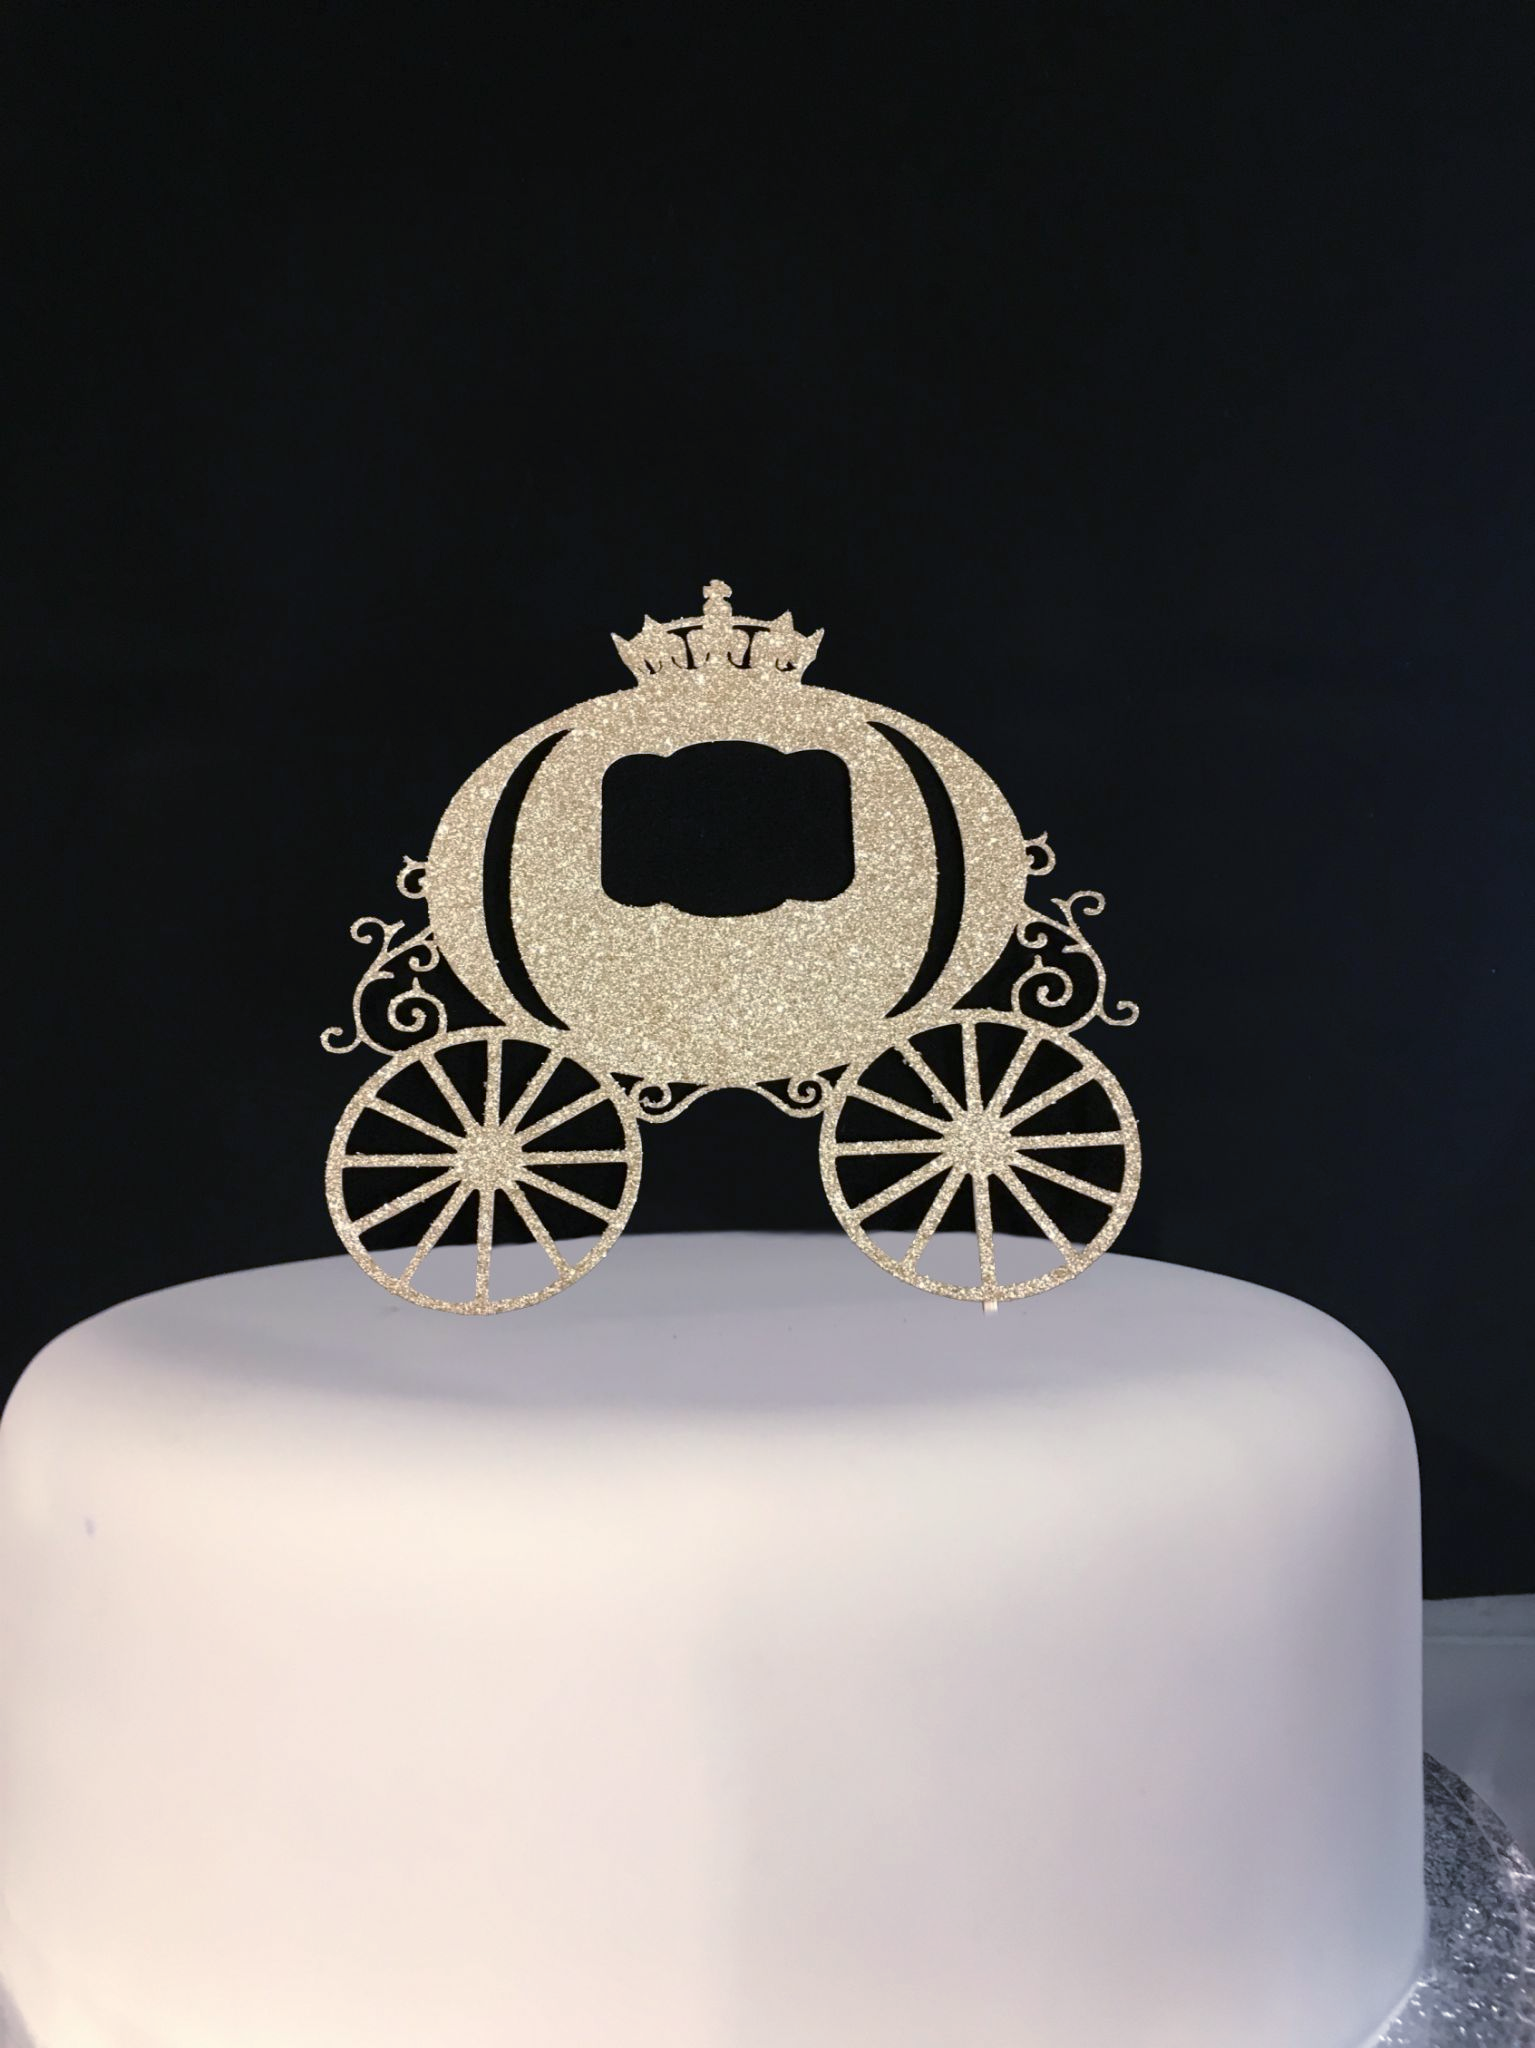 Cake Art Food Grade Casting Gel Uk : Princess Carriage Glitter Cake Pick Topper Sparkly ...